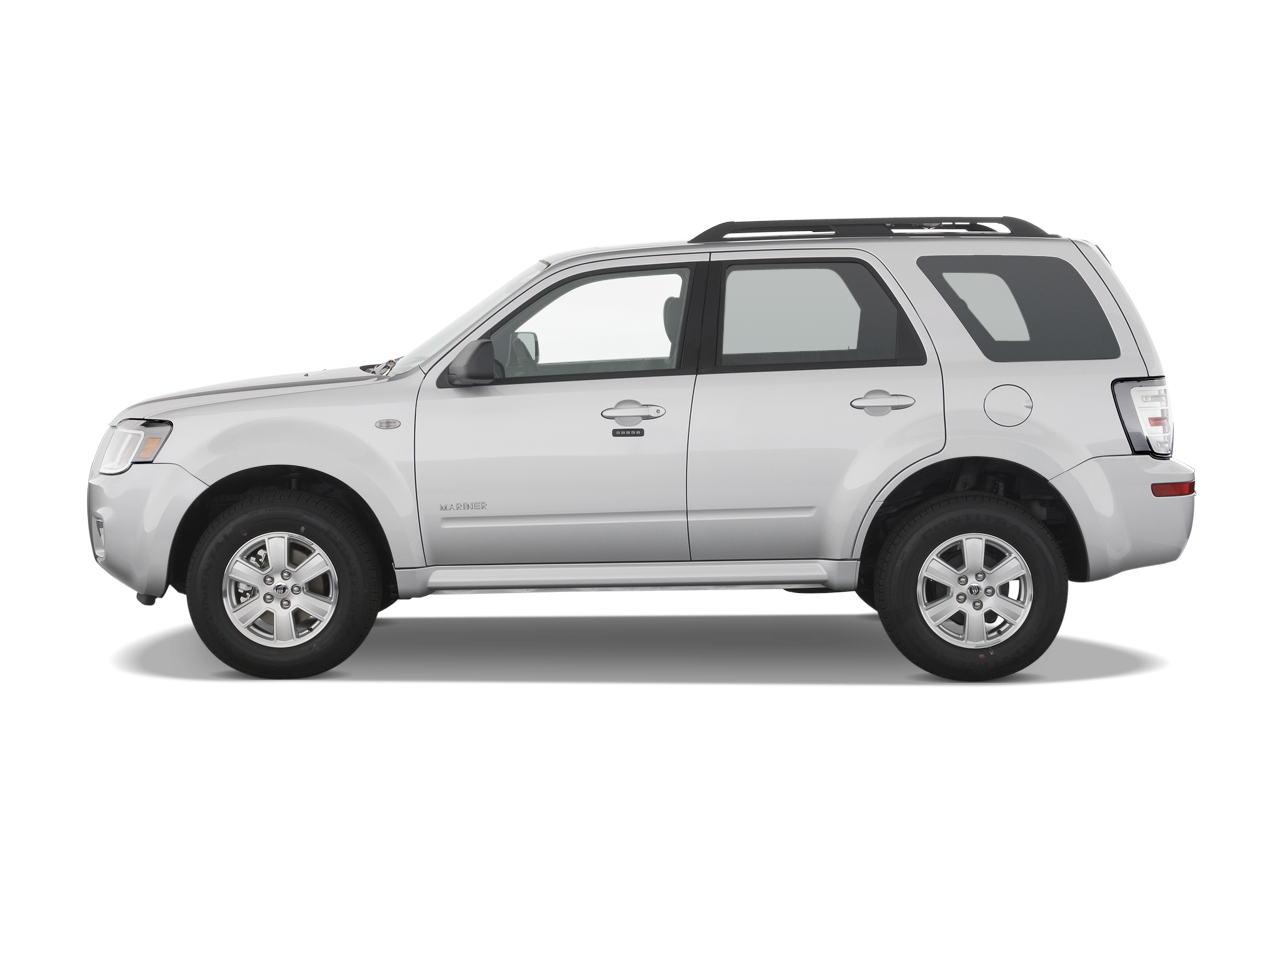 2009 mercury mariner hybrid 4wd mercury hybrid suv. Black Bedroom Furniture Sets. Home Design Ideas